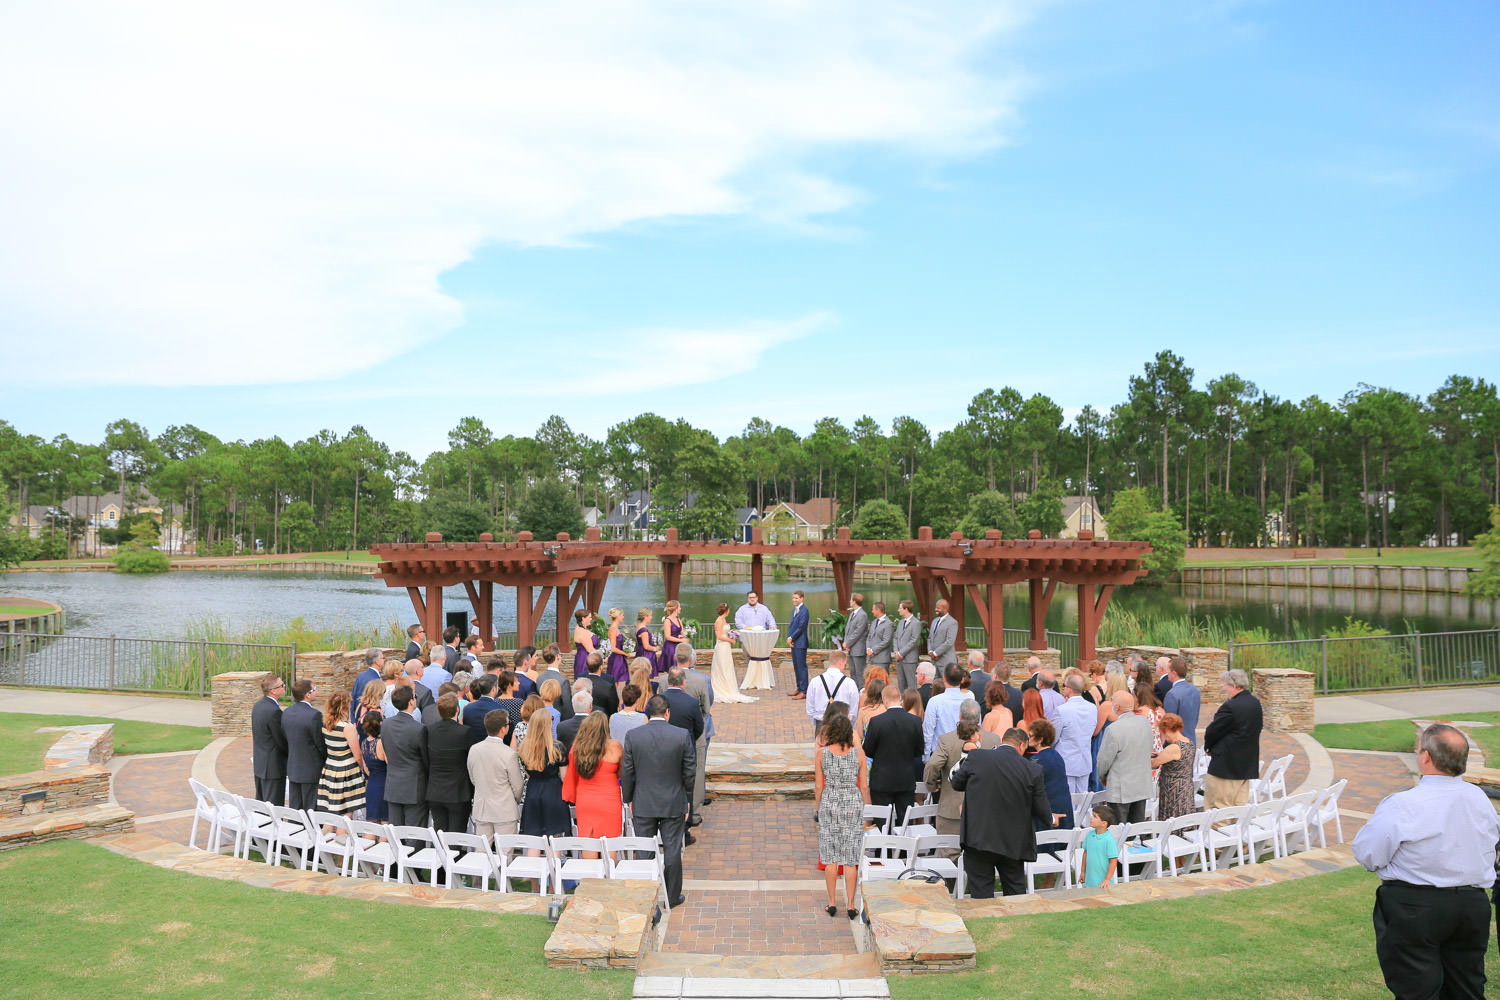 st james planation wedding